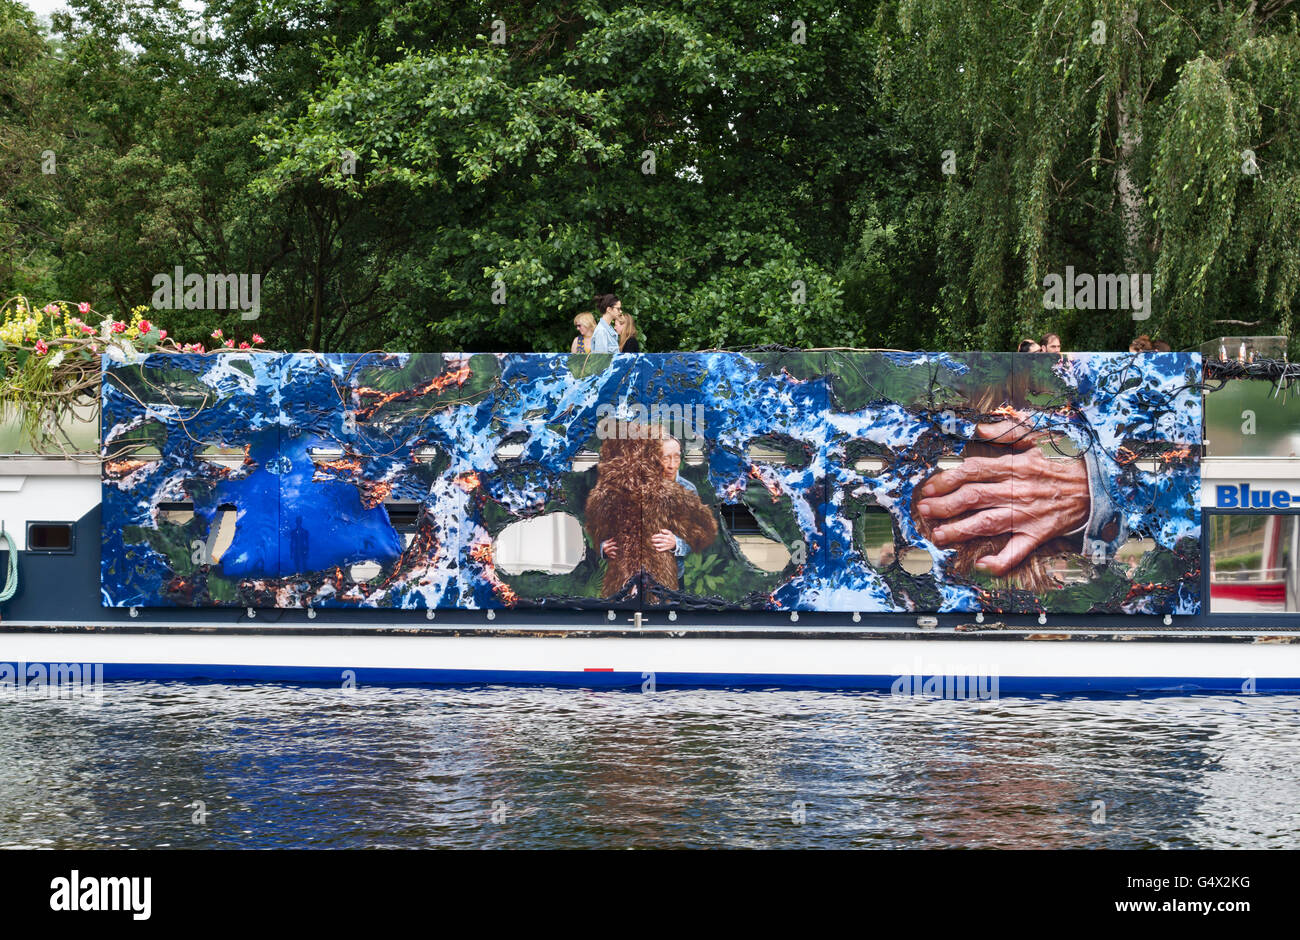 Berlin, Germany. As part of the Berlin Biennale, the Blue Star 'Art Boat' takes visitors on city cruises - Stock Image